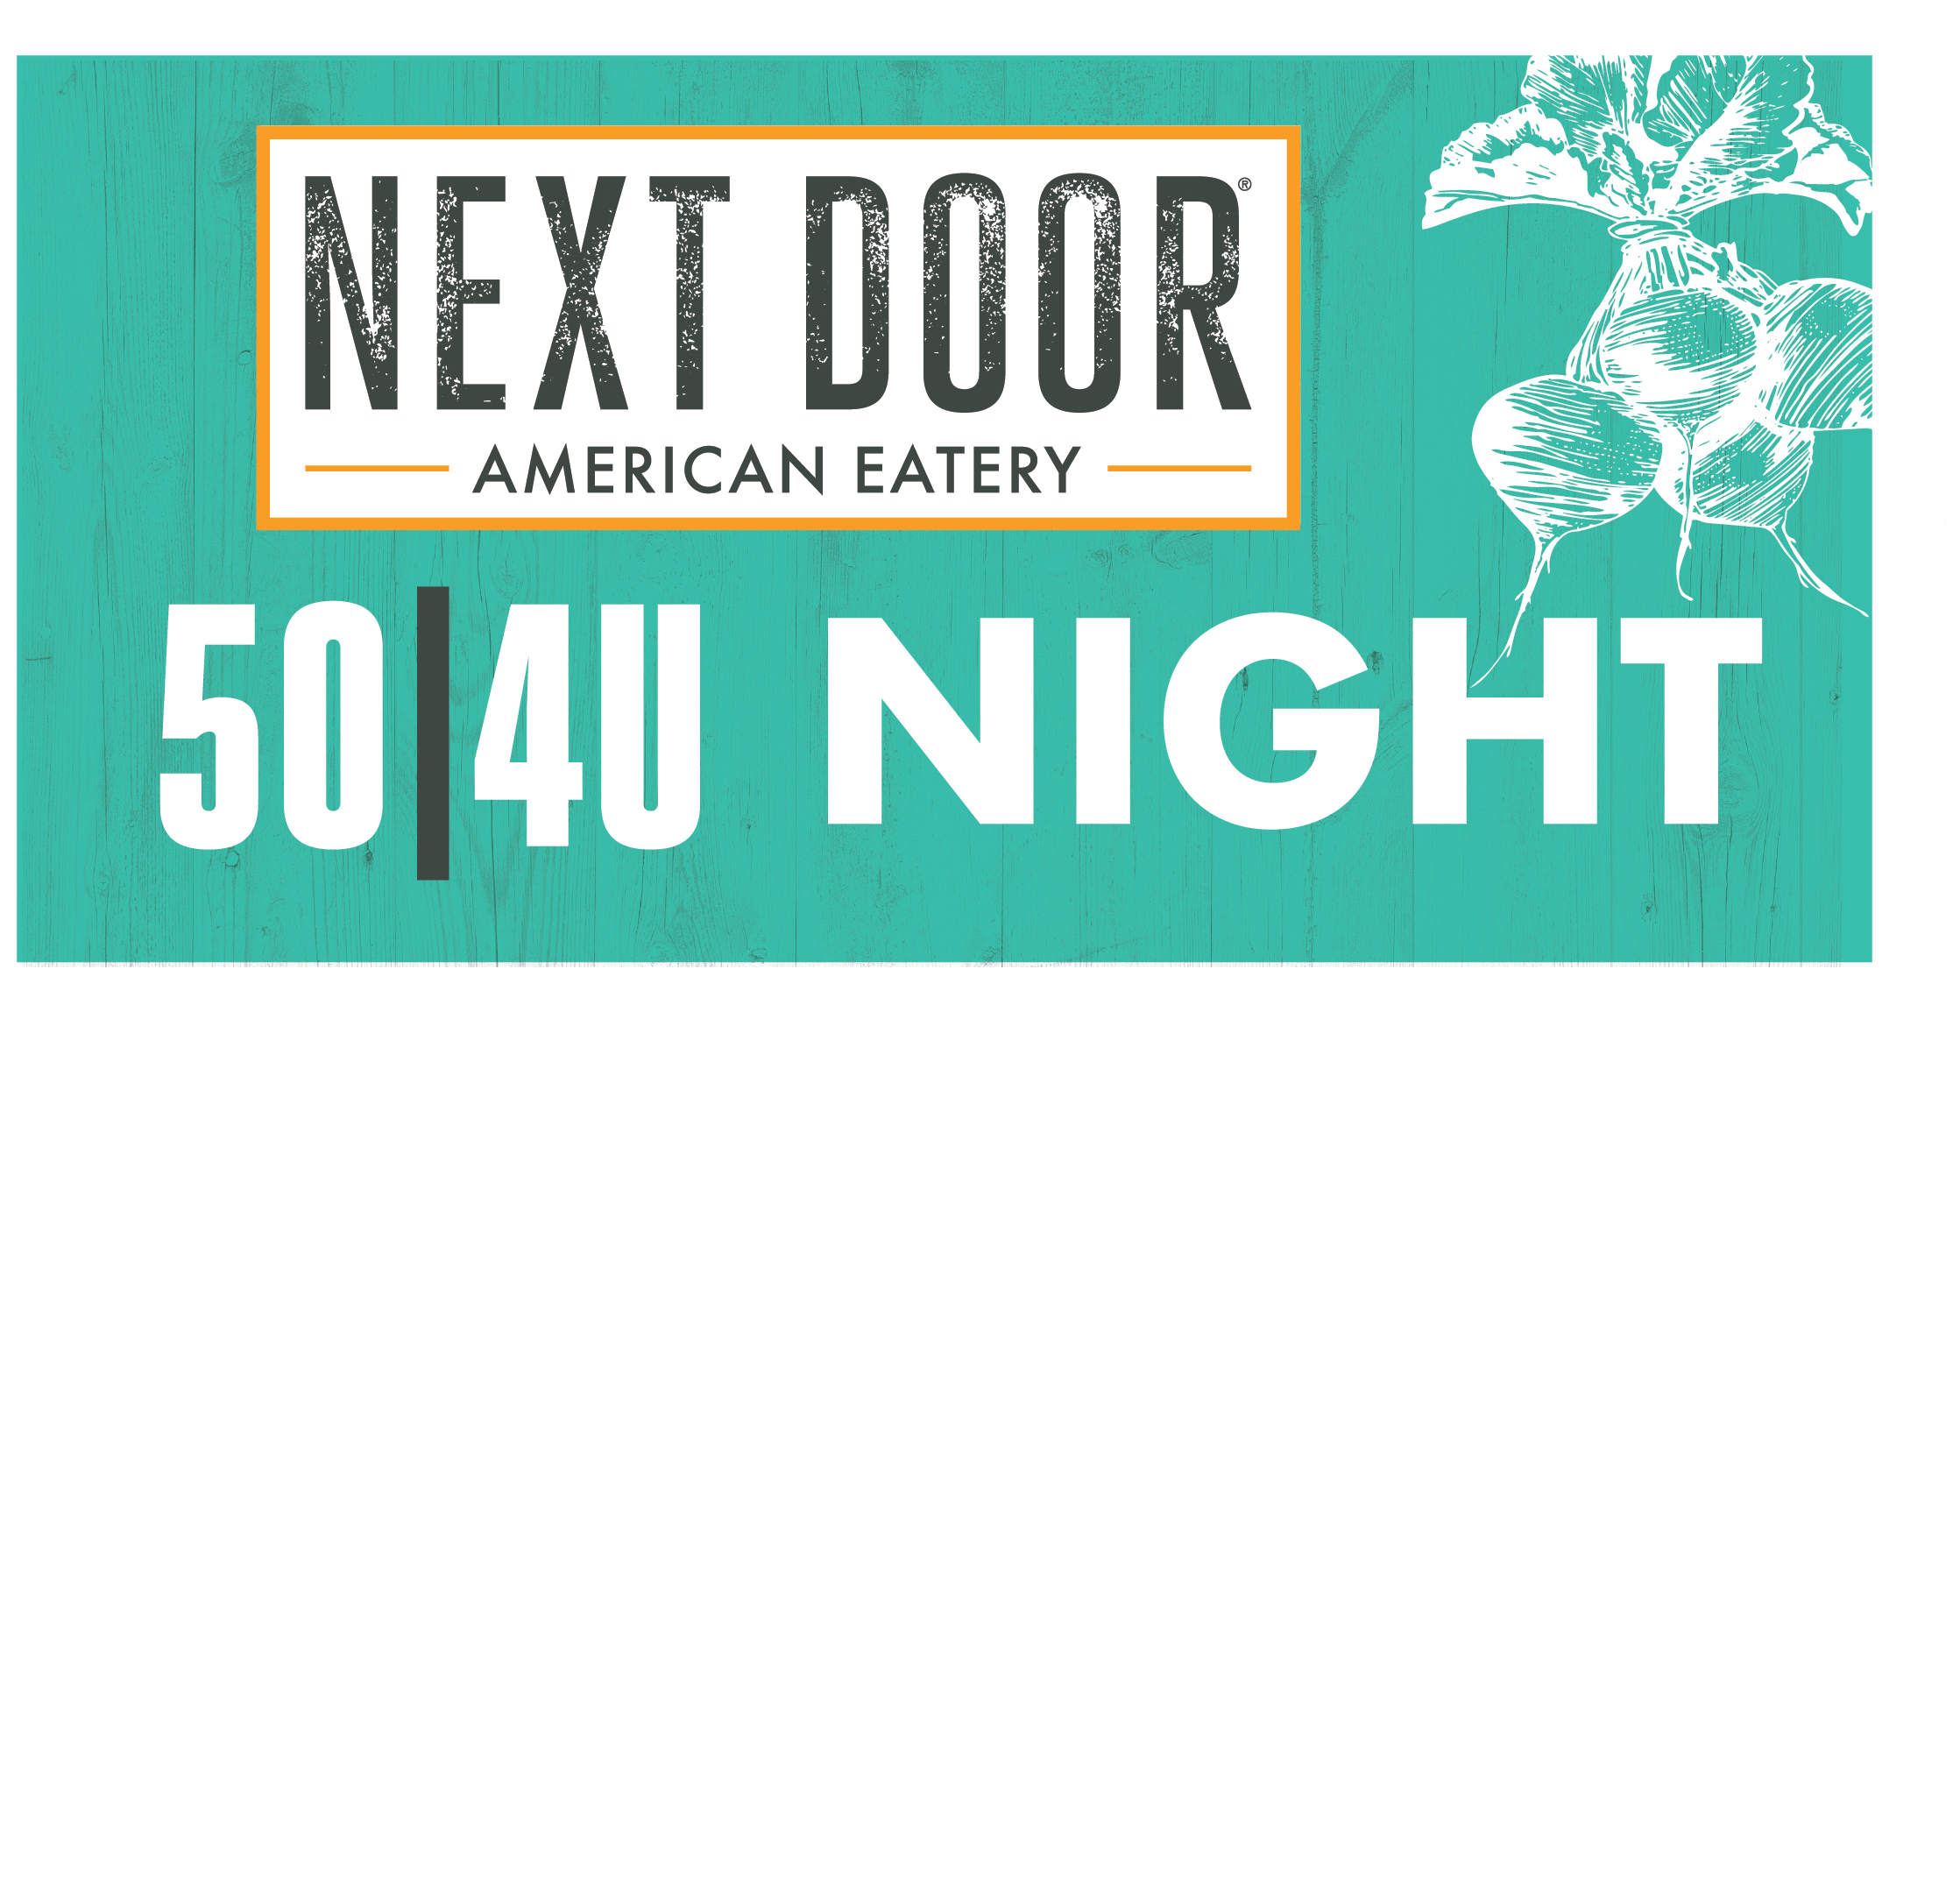 Adventure Elementary 50|4U Night at Next Door